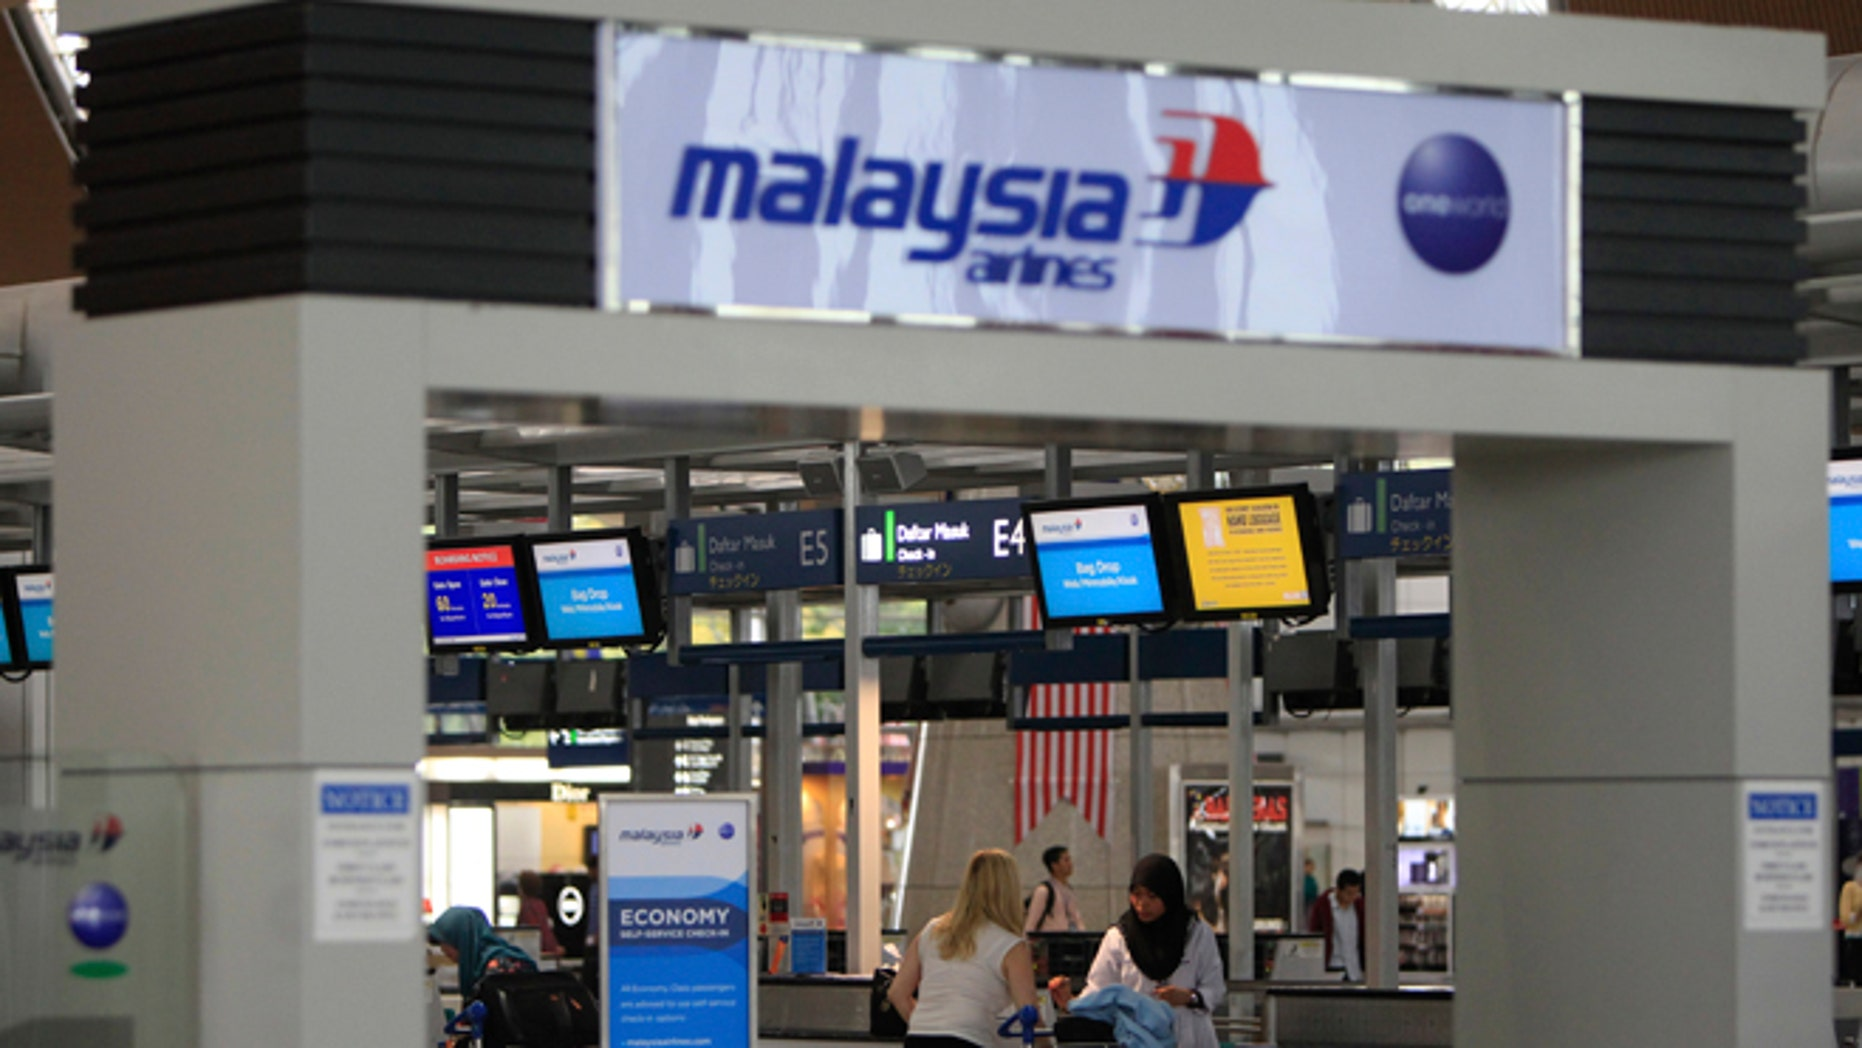 Aug. 29, 2014: Passengers are ready to check in at a departure lobby at Kuala Lumpur International Airport in Sepang, Malaysia. Malaysia Airlines will cut 6,000 workers as part of an overhaul announced Friday to revive its damaged brand after being hit by double passenger jet disasters.(AP/Lai Seng Sin)